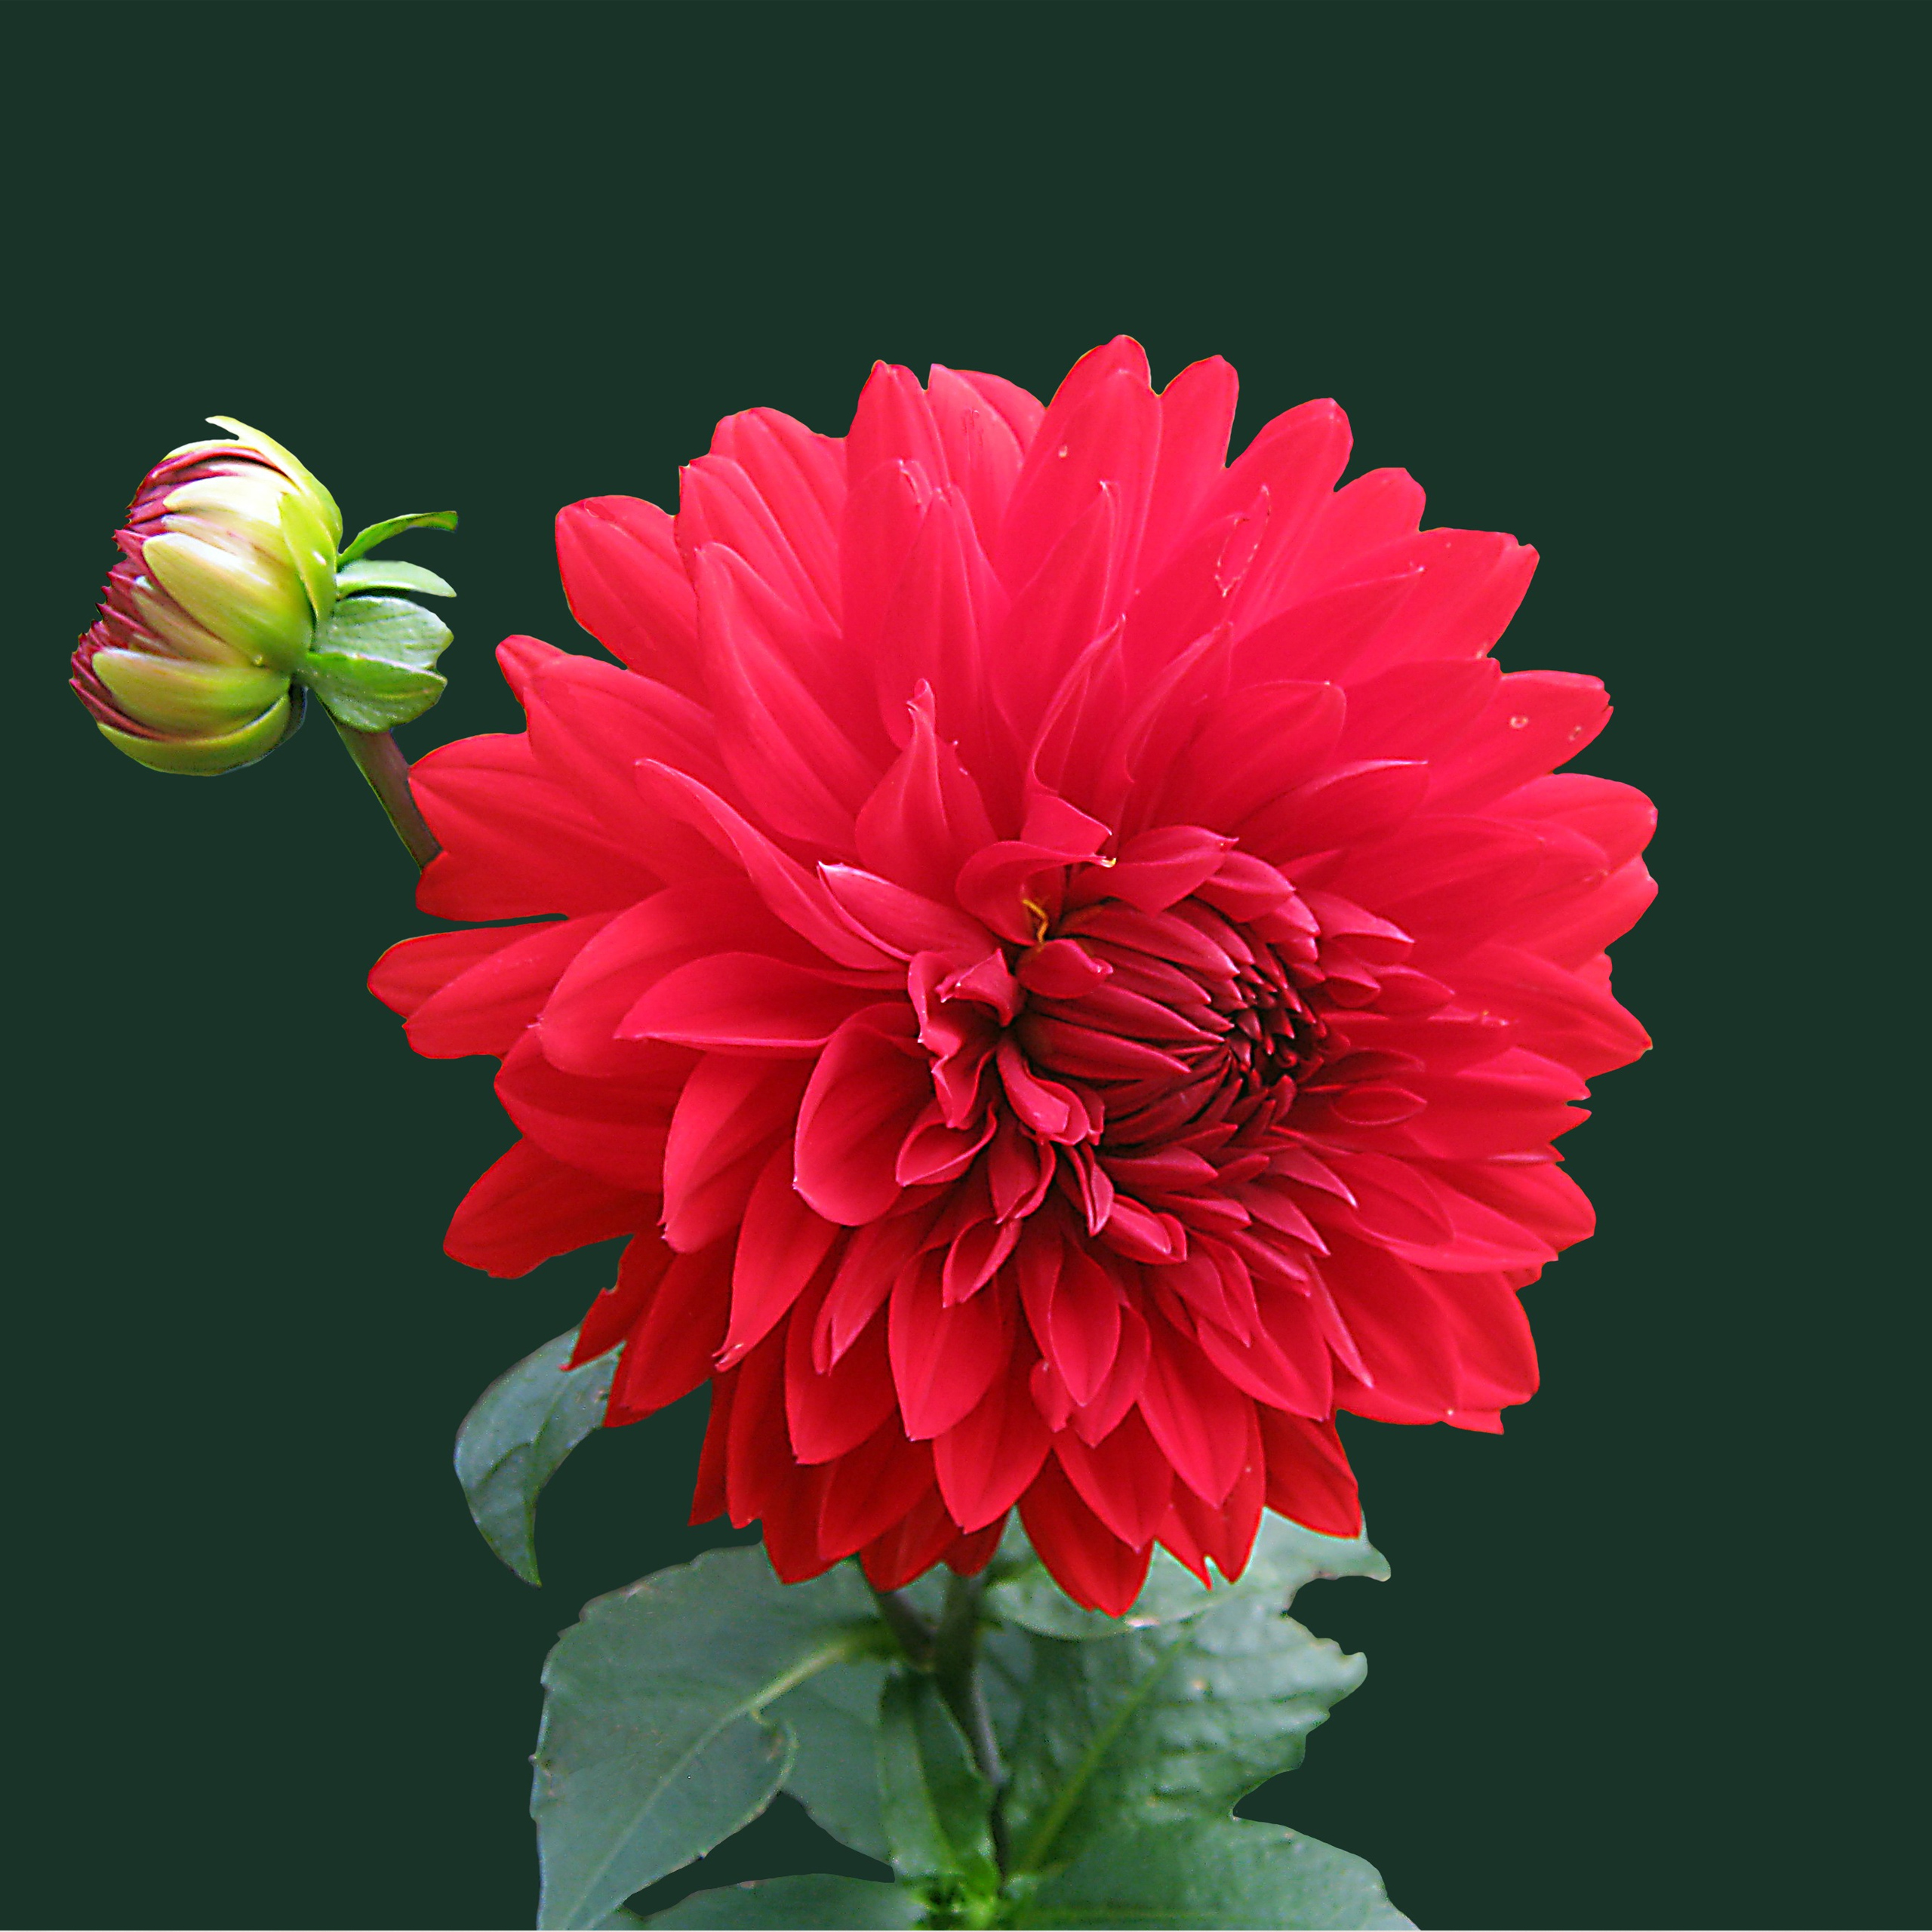 Red Beautiful Flowers Wallpapers For Mobile